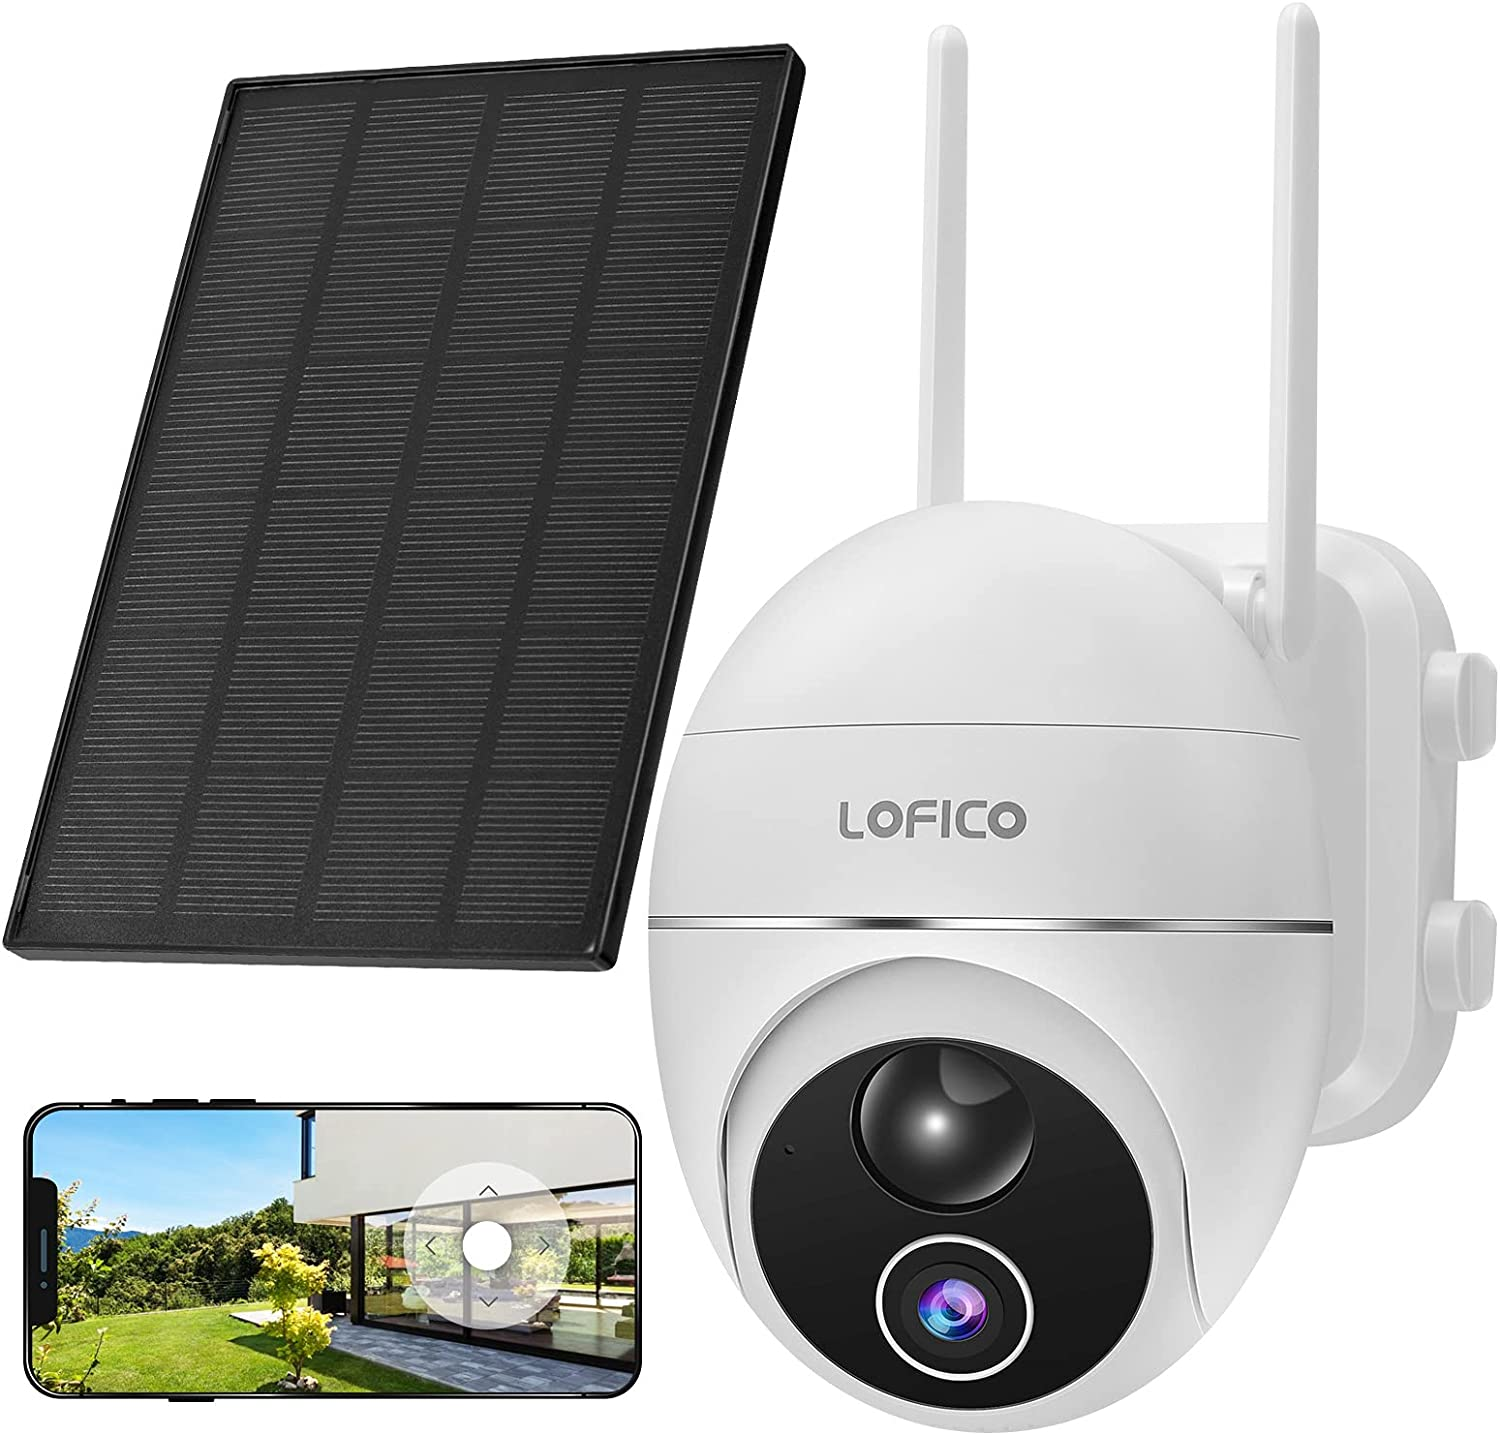 Security Camera Outdoor, LOFICO Outdoor Camera 360°PTZ , Solar Panel 15000mAh Rechargeable Battery Power, Security Cameras Wireless Outdoor with 1080P Night Vision, 2-Way Audio, PIR Motion Detection